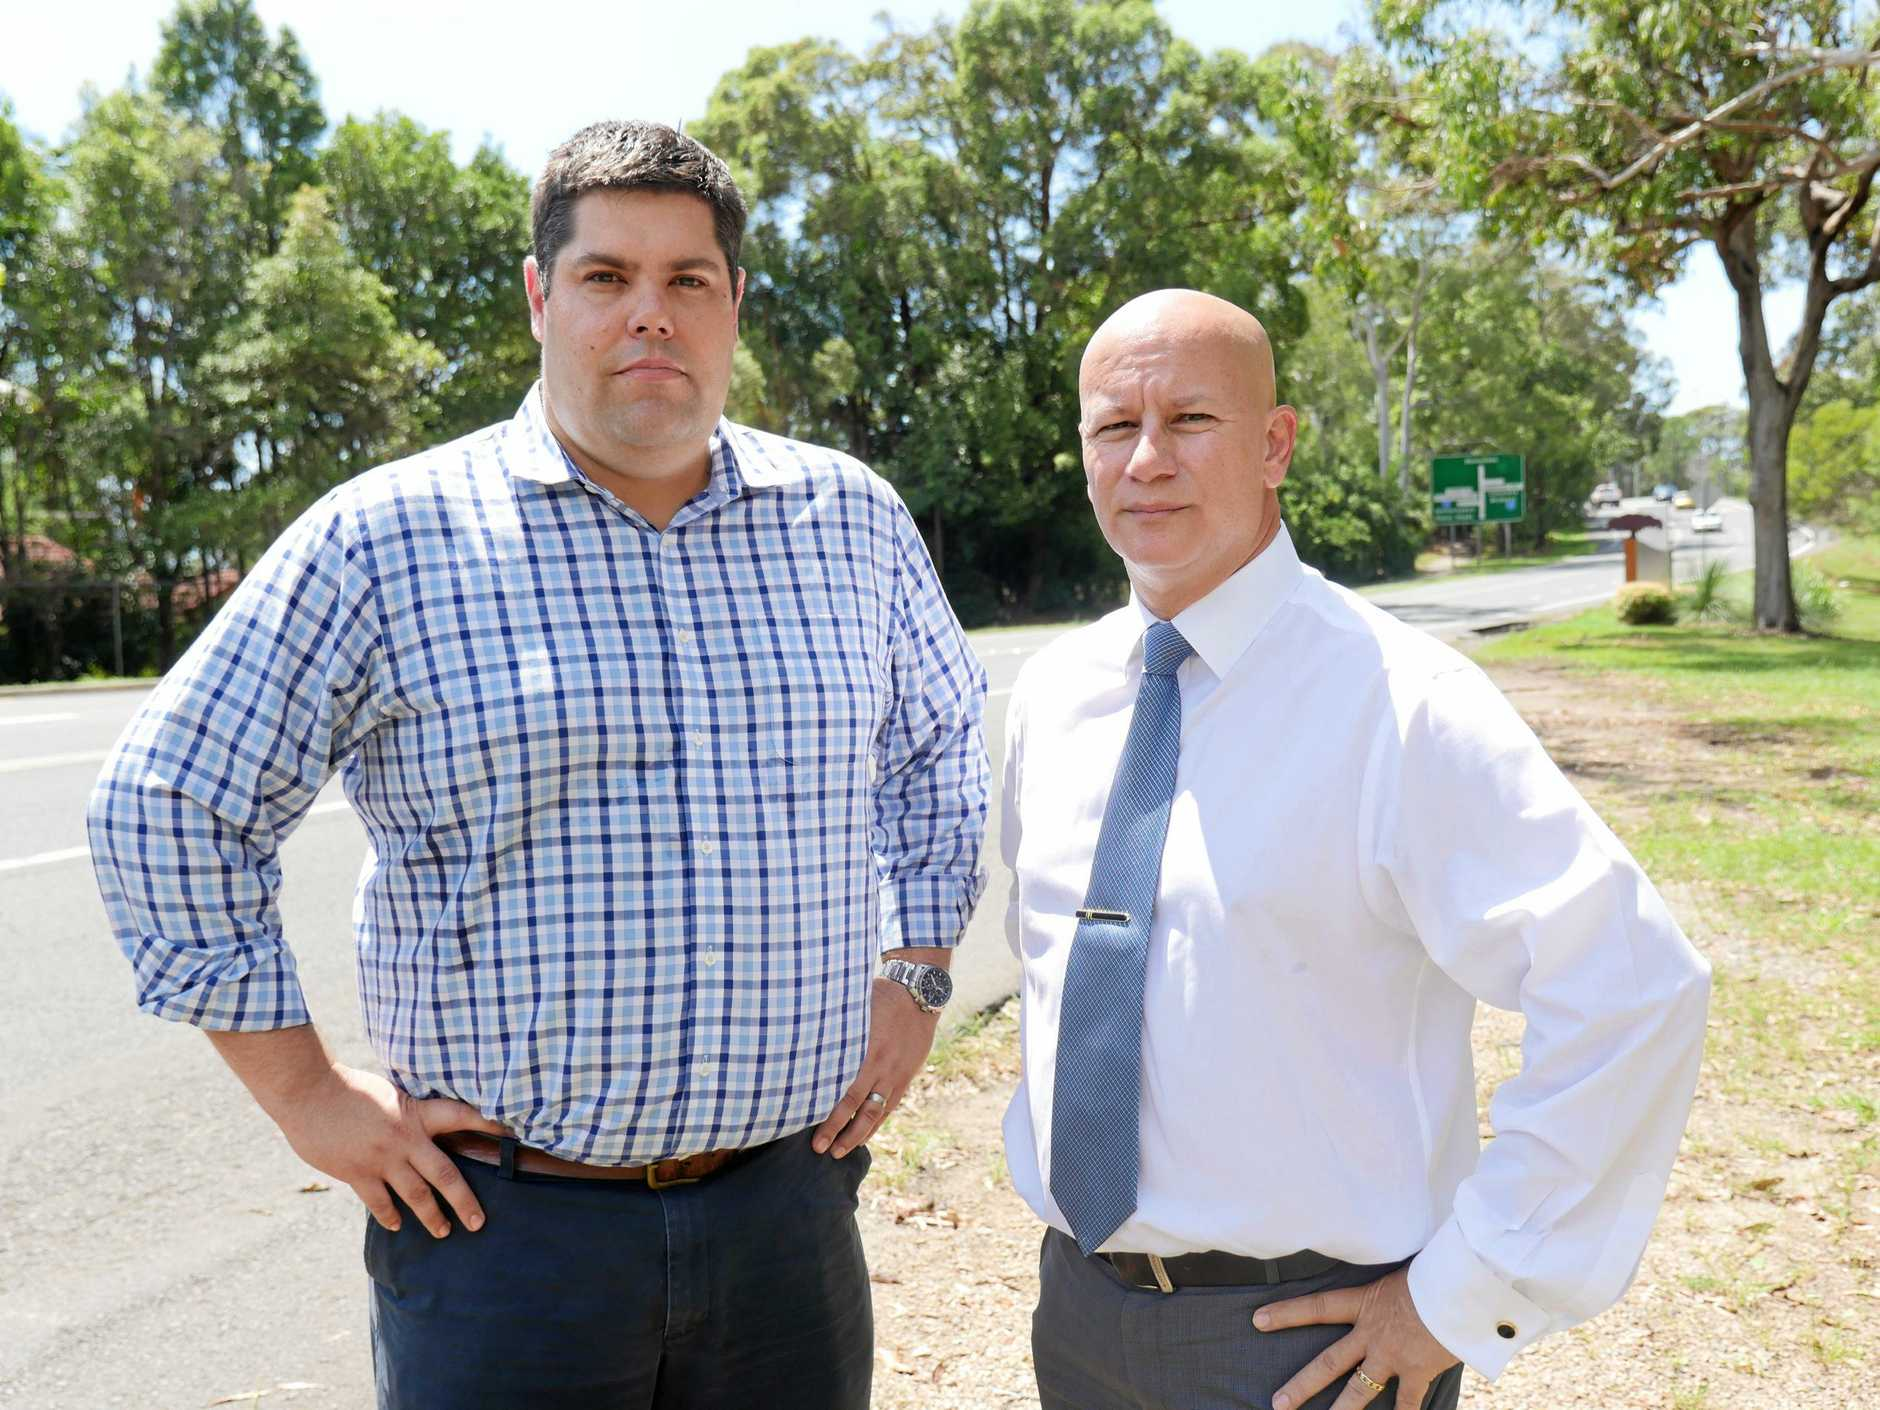 Buderim MP Brent Mickelberg and Transport and Main Roads shadow minister Steve Minnikin call for an urgent solution to traffic chaos at a Buderim intersection.